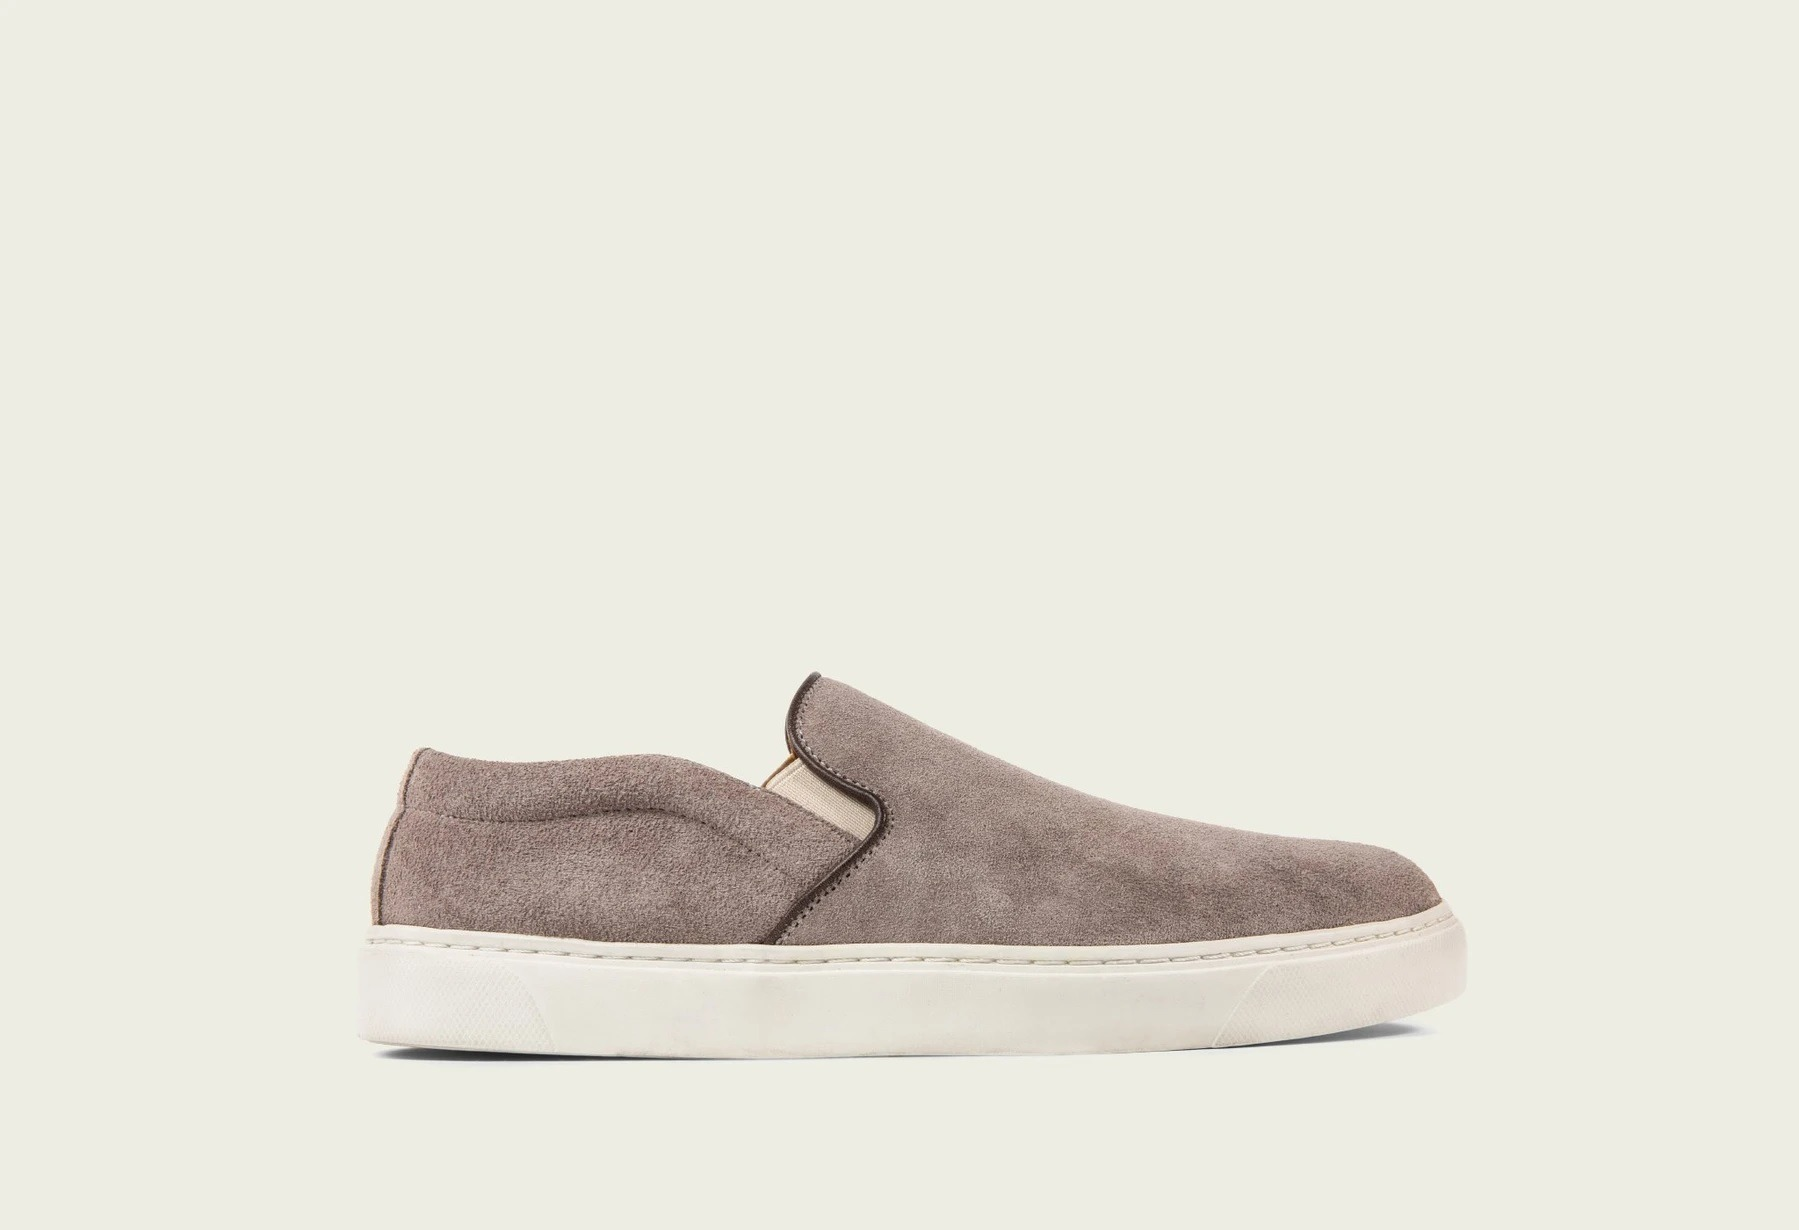 Viberg Slip-on in Eco Veg Pewter Suede Roughout